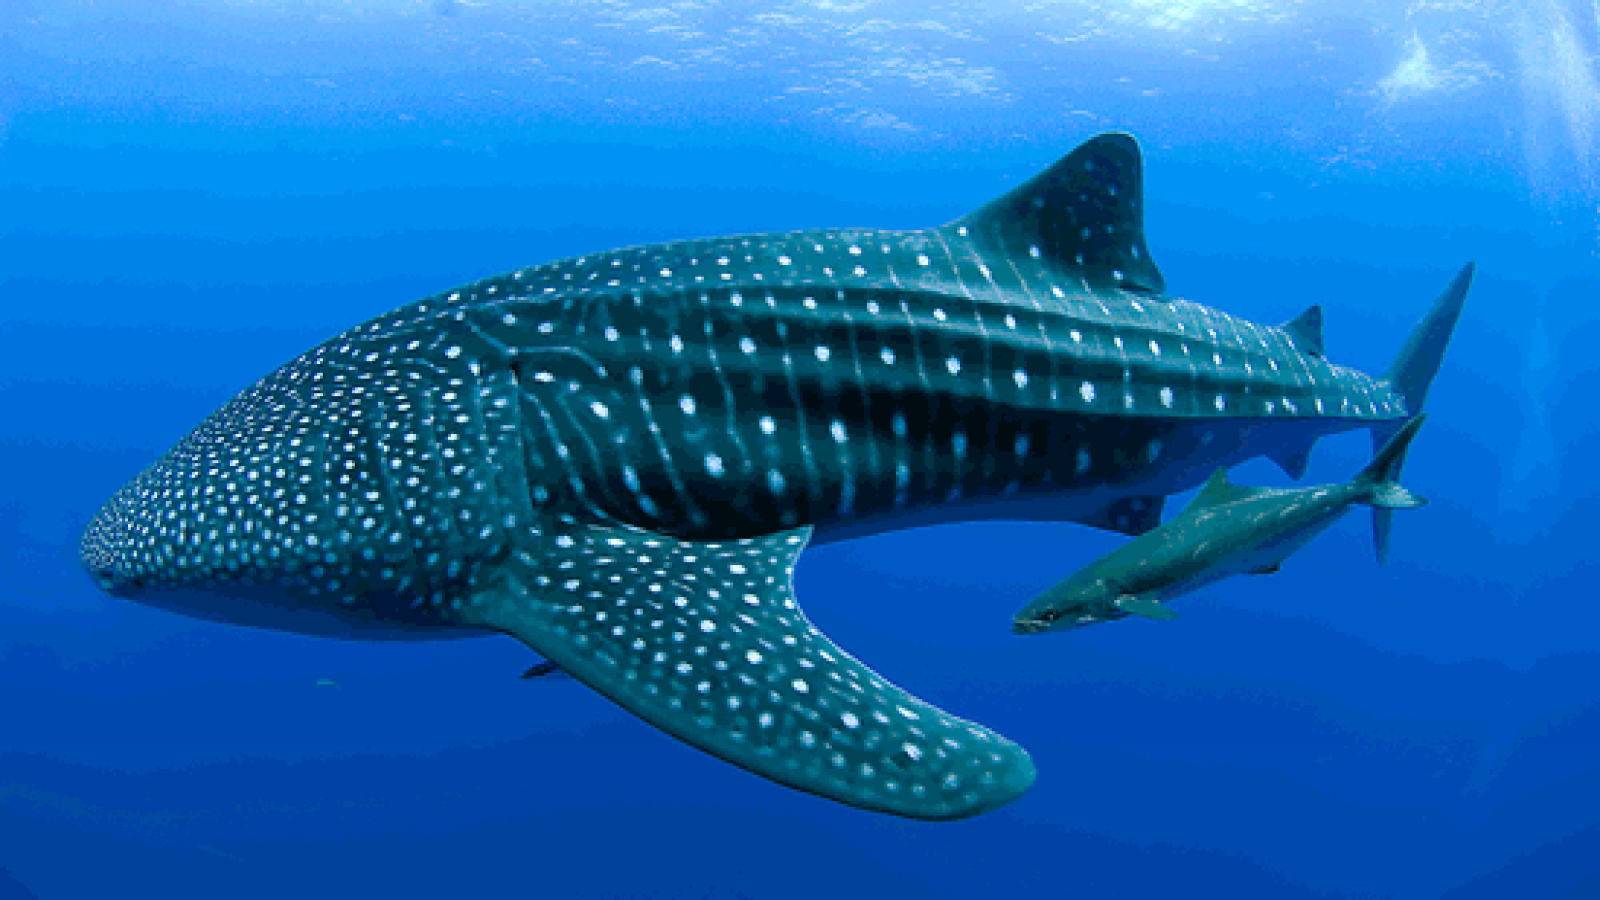 whale-shark-hd-wallpapers2 (png image, 1600 × 900 pixels